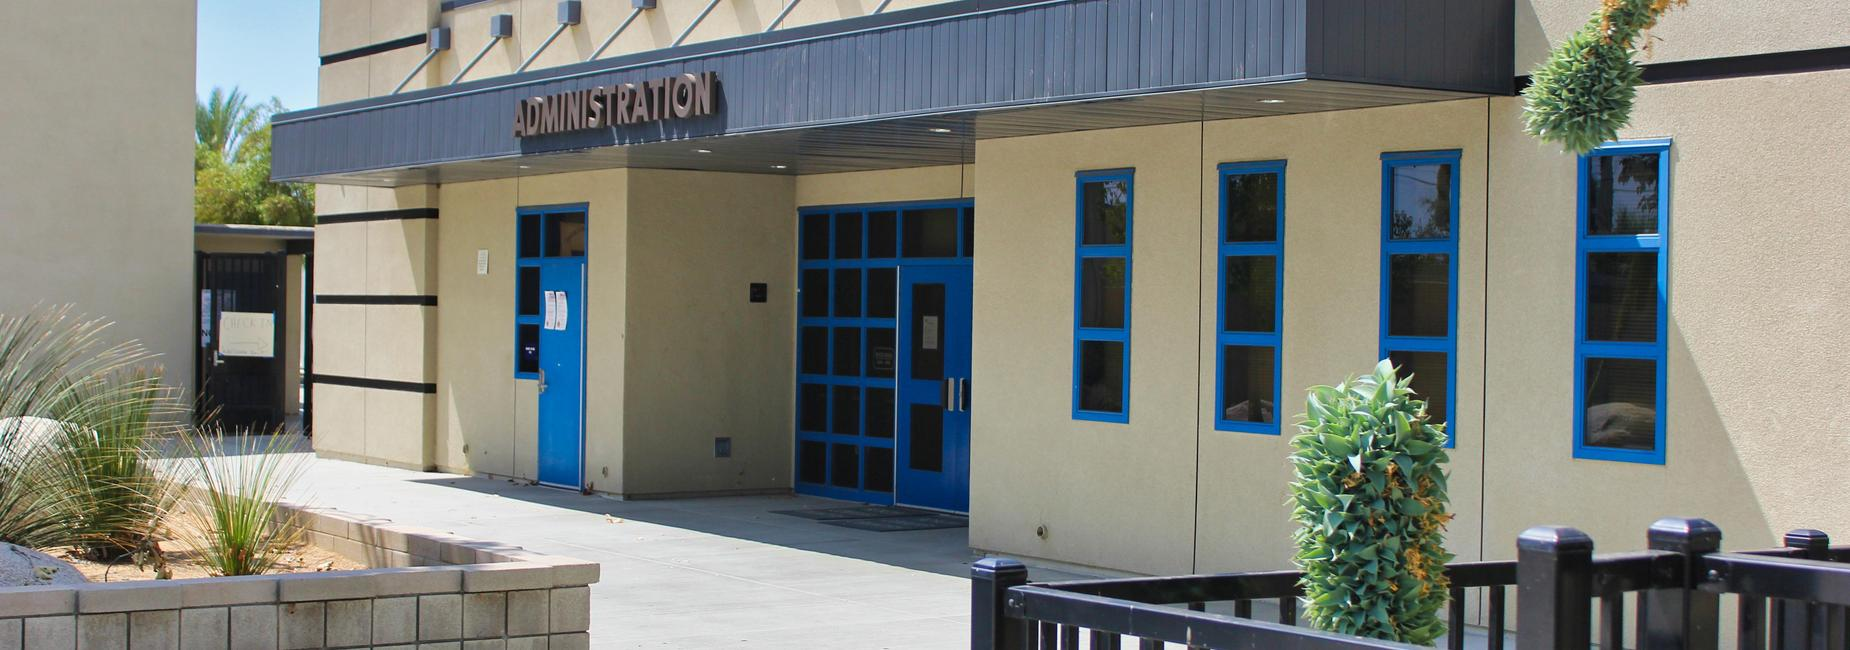 Acacia Middle School administration building